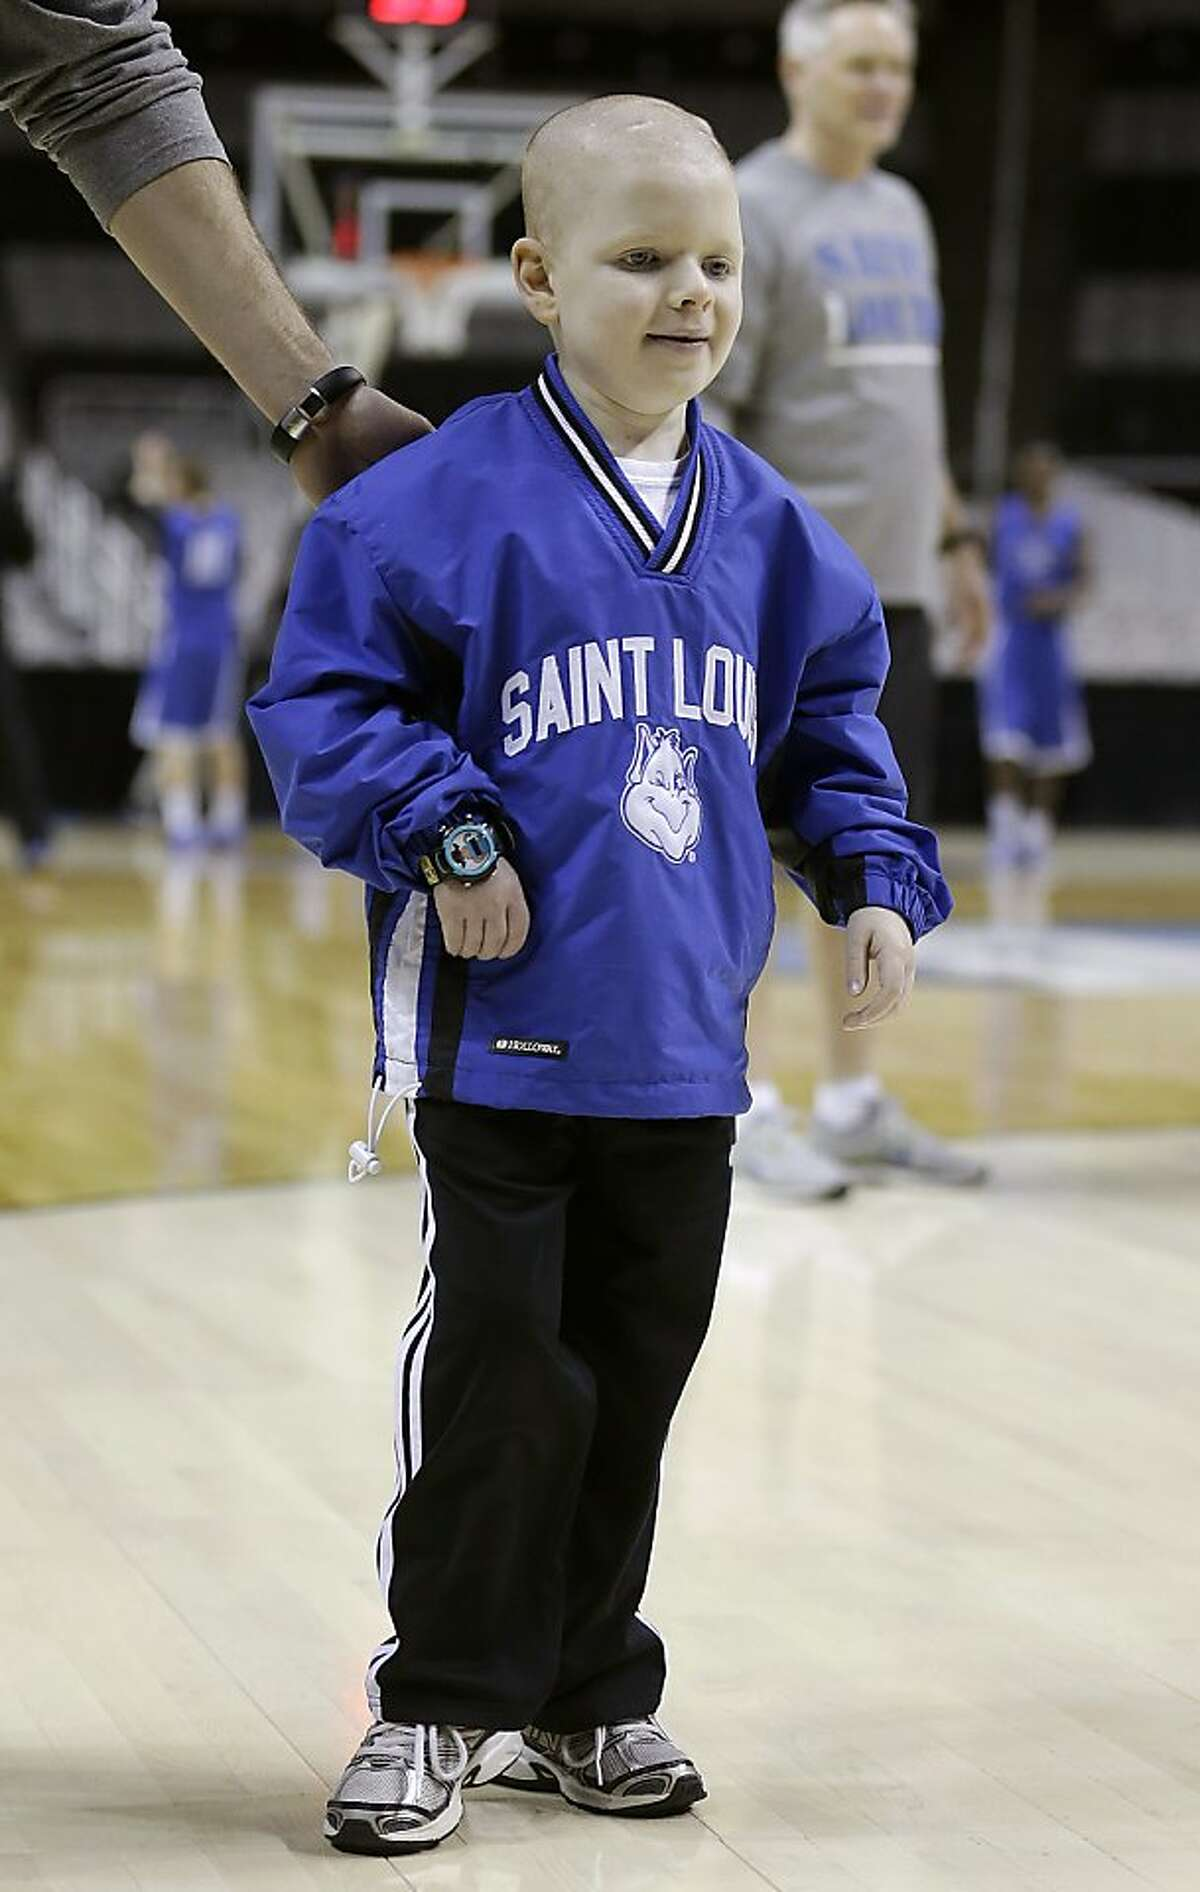 Saint Louis fan Joshua Brown, 9, who has a brain tumor, watches as Saint Louis practice for a second-round game in San Jose, Calif., Wednesday, March 20, 2013.